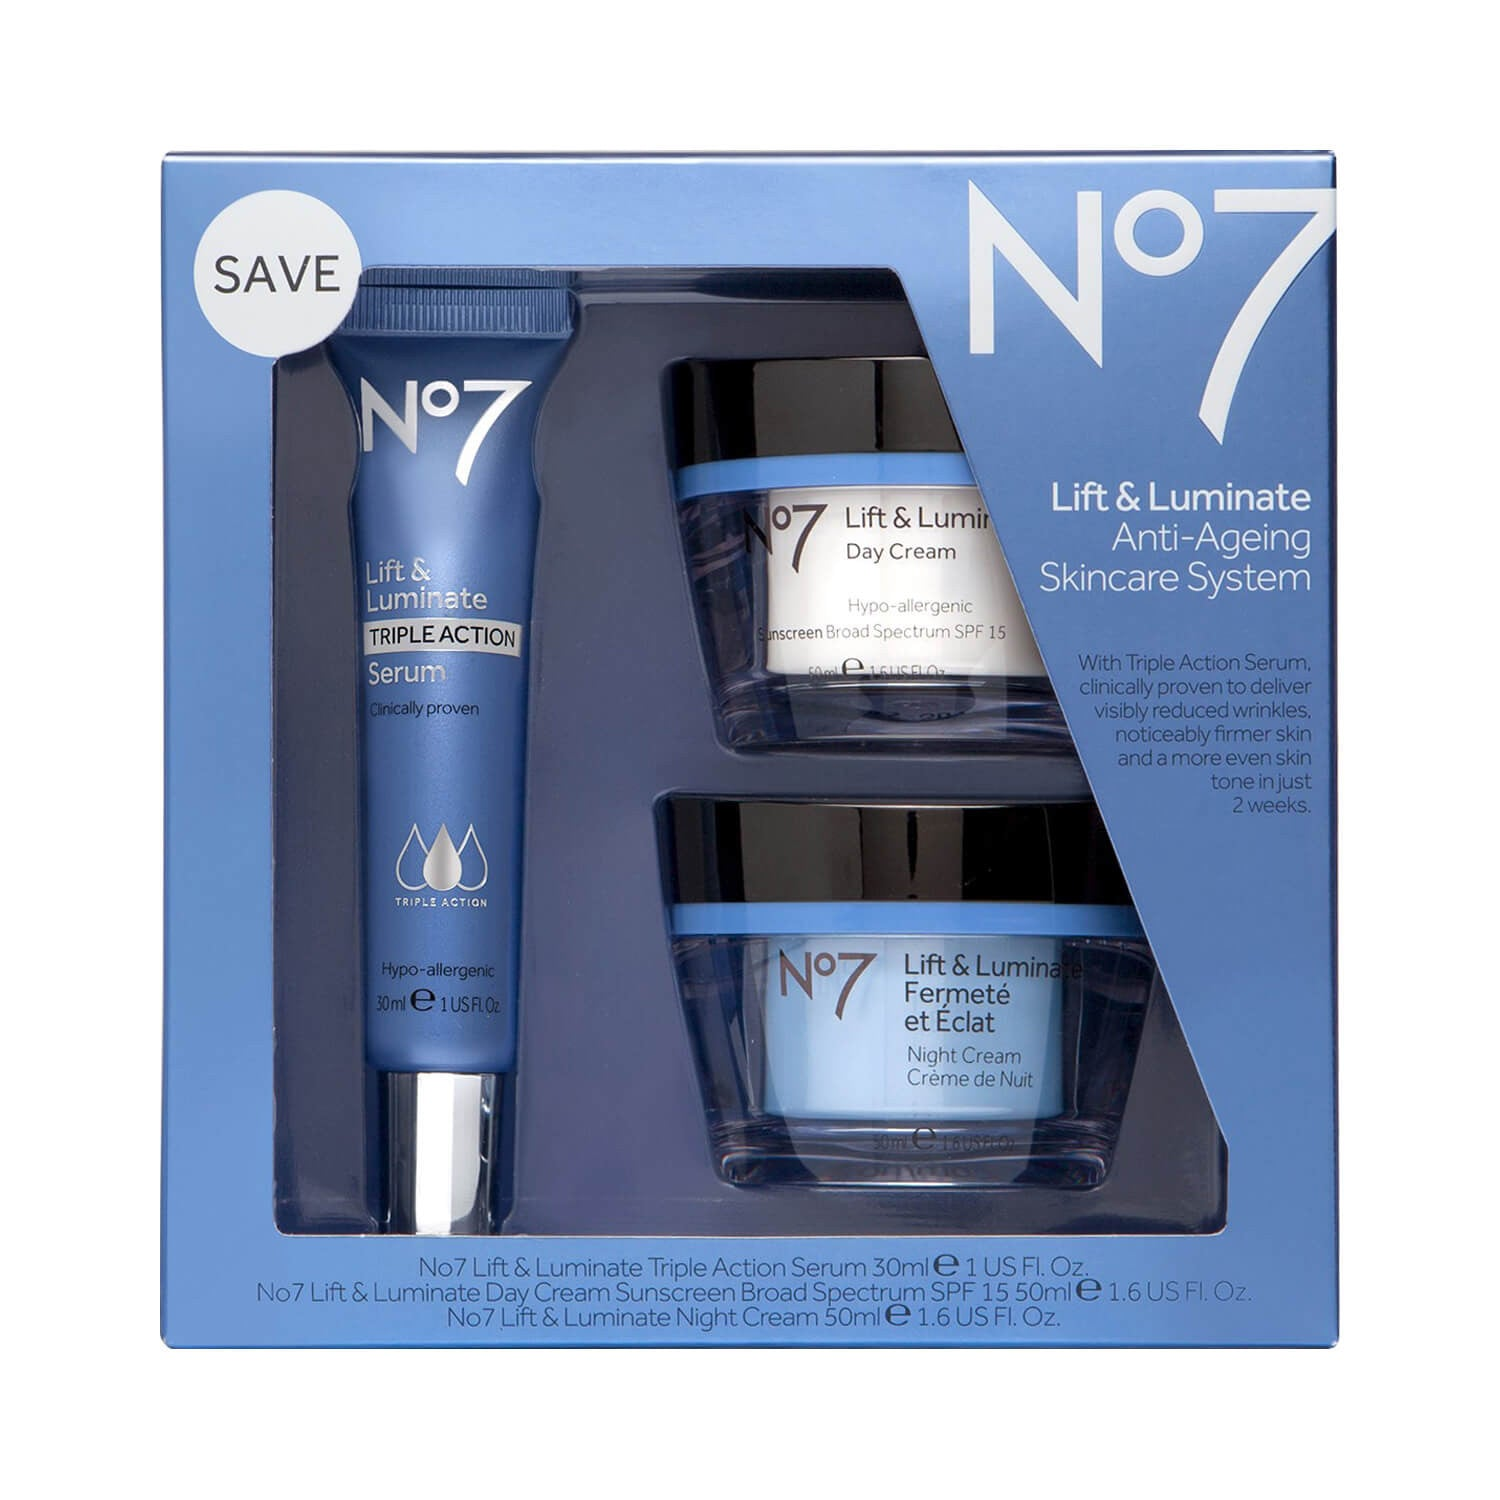 Boots No Lift Luminate Skincare System X X